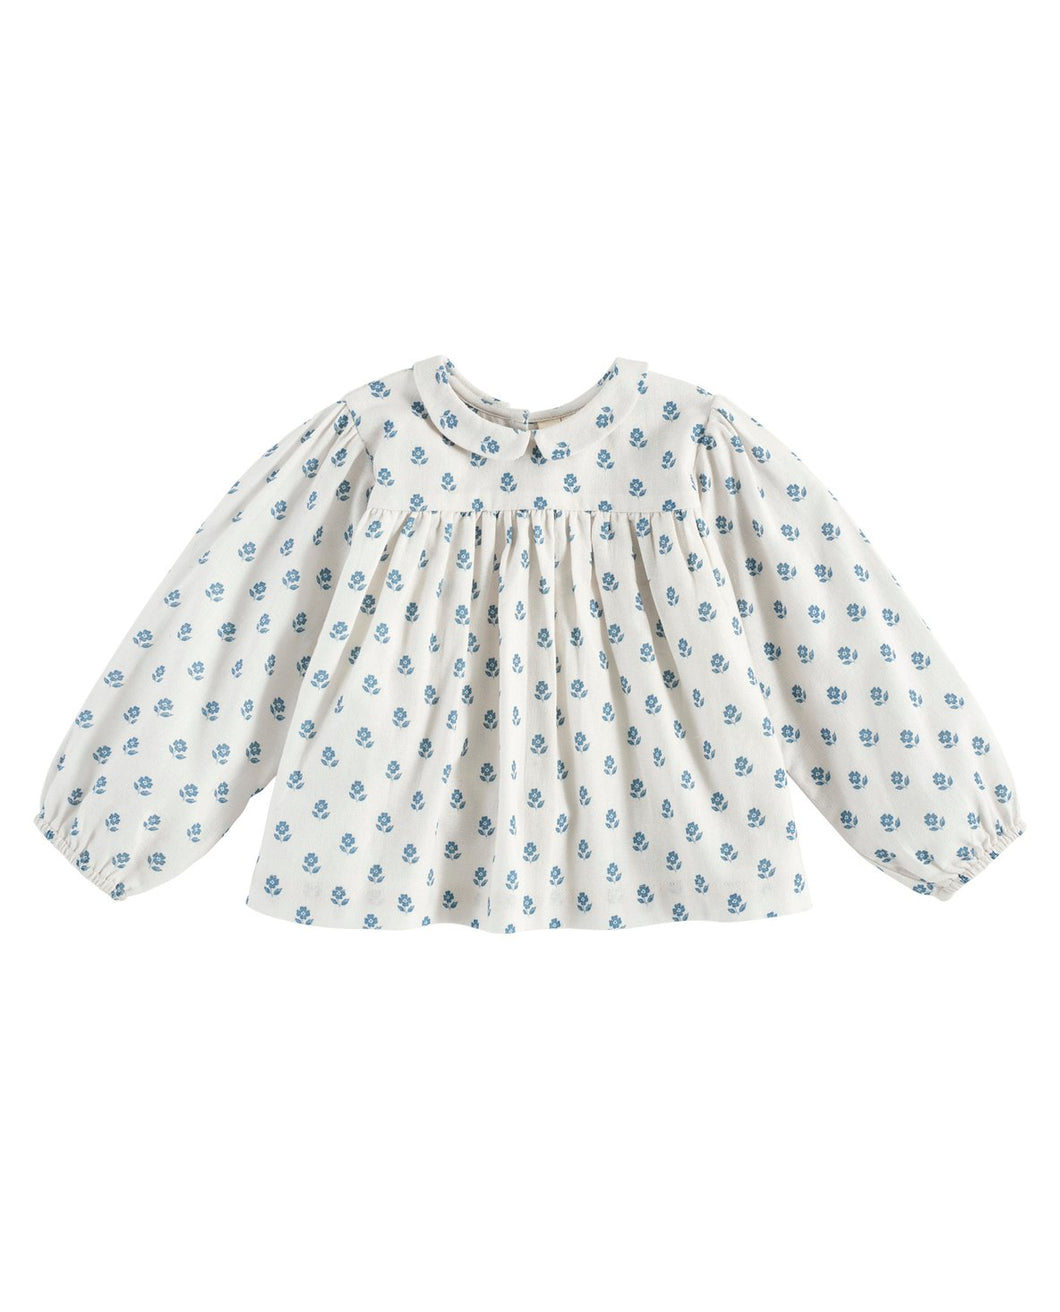 Little Cotton Clothes Emma Blouse - Upsy Daisy Floral - 2-3Y, 4-5Y